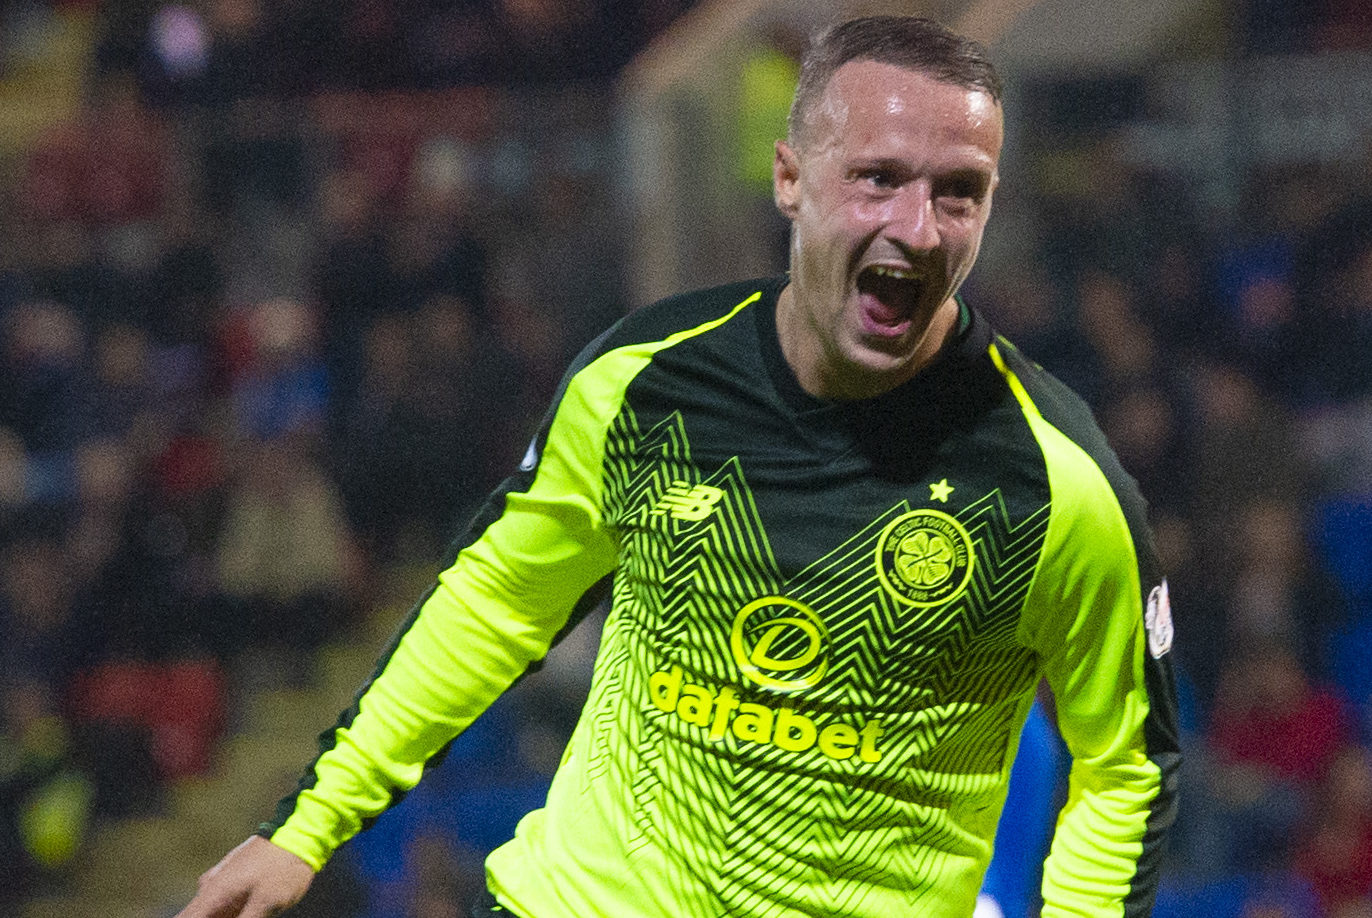 Celtic's Leigh Griffiths